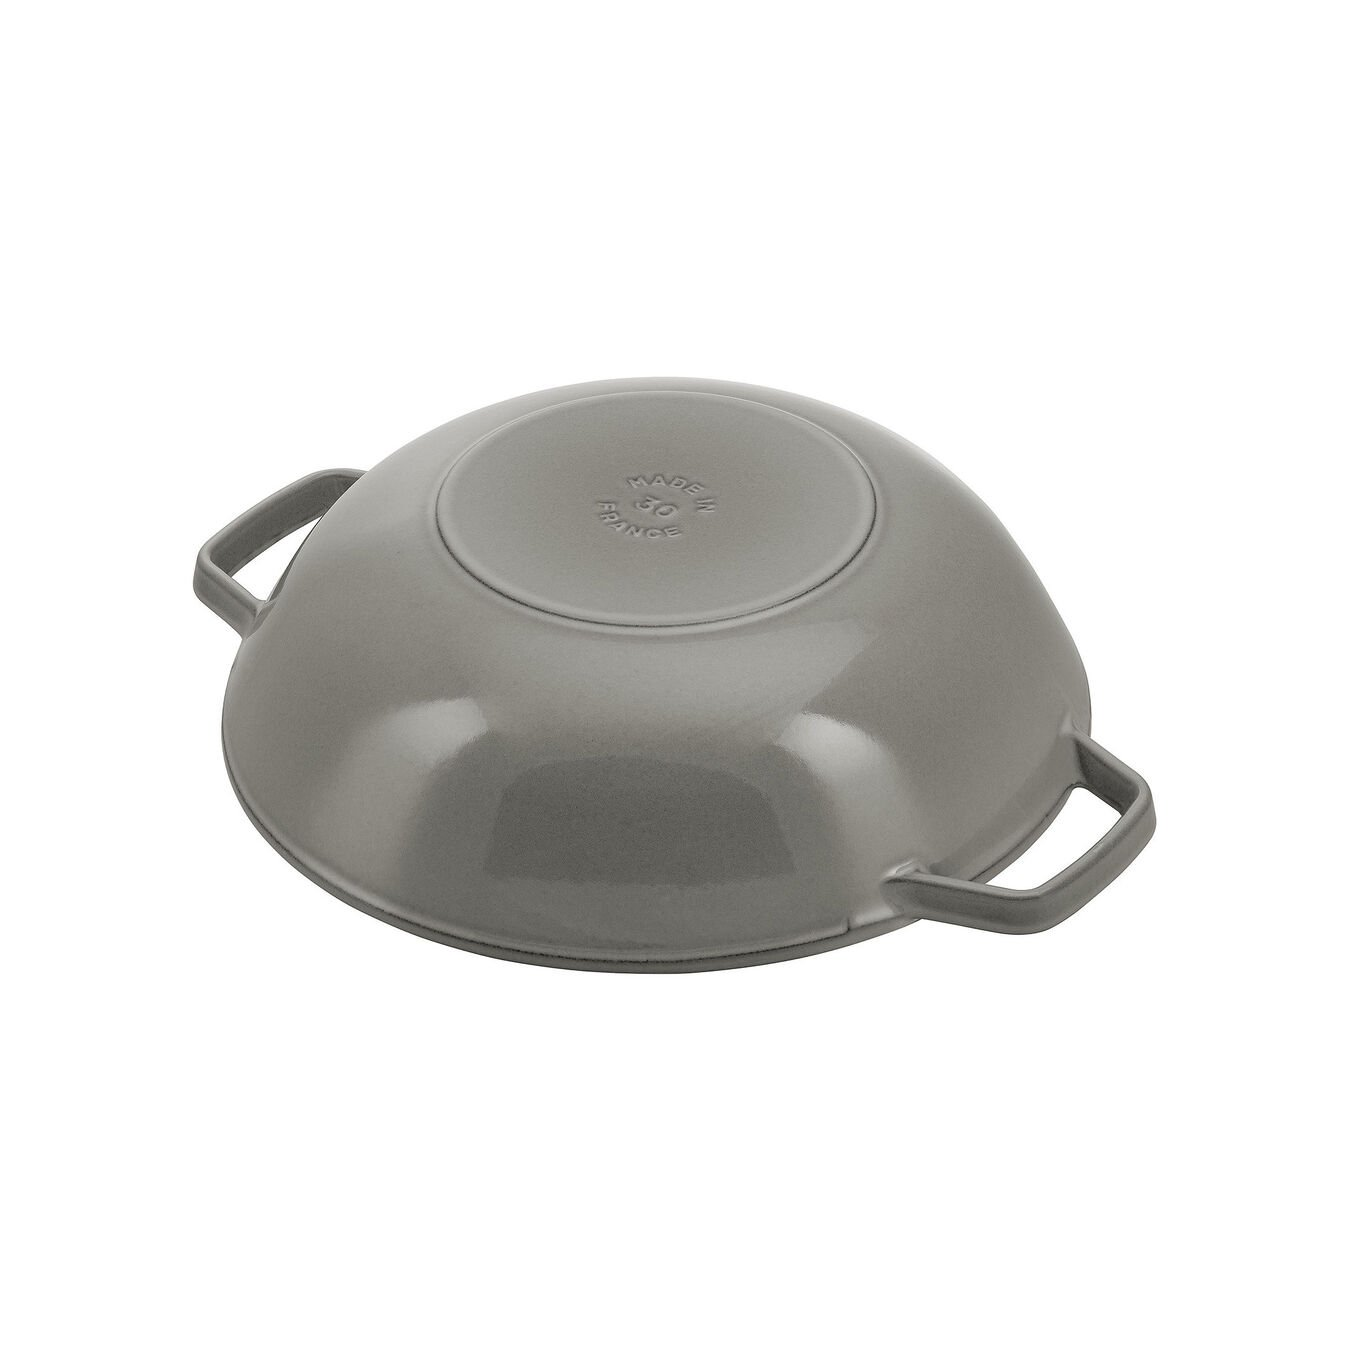 30 cm / 12 inch Wok with glass lid, graphite-grey,,large 2